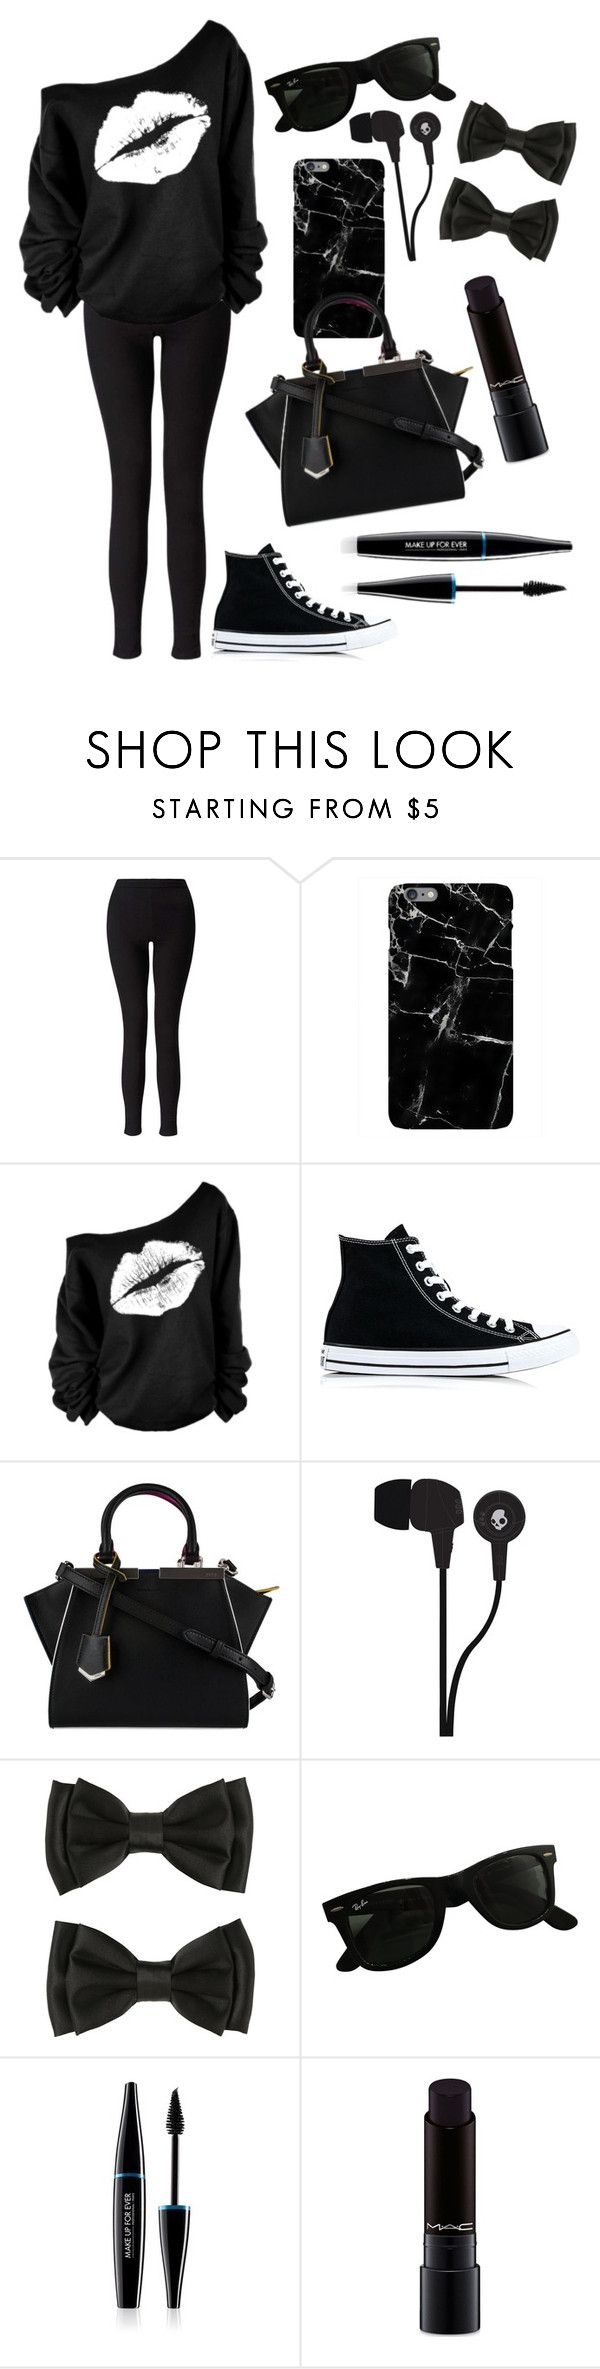 """Untitled #198"" by electraz on Polyvore featuring Miss Selfridge, Converse, Fendi, Skullcandy, Ray-Ban, MAKE UP FOR EVER and MAC Cosmetics"